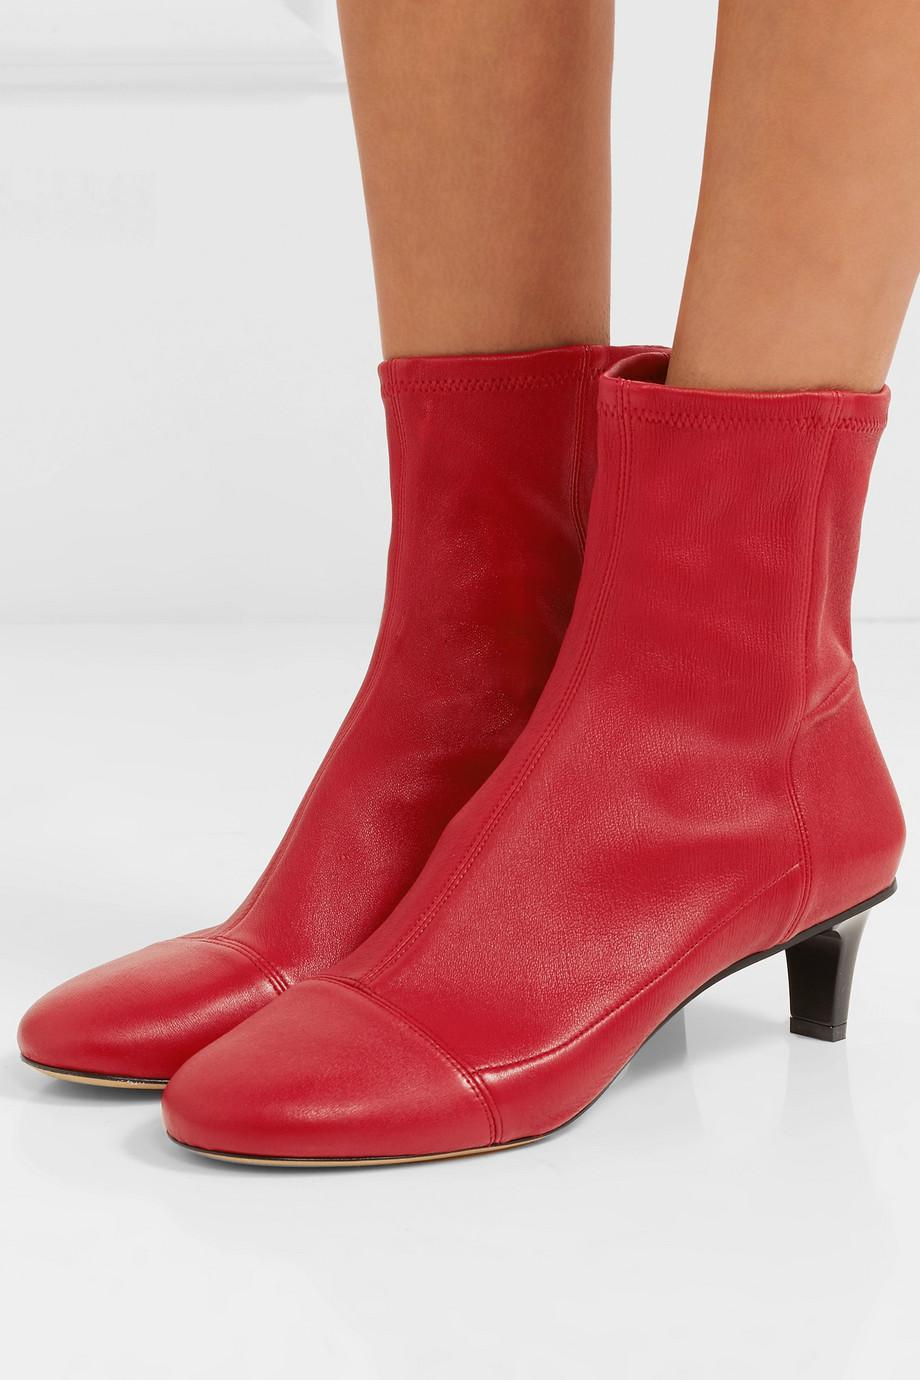 Isabel Marant Daevel Sock Boots Buy Cheap Recommend Hc6Sp6g2OI